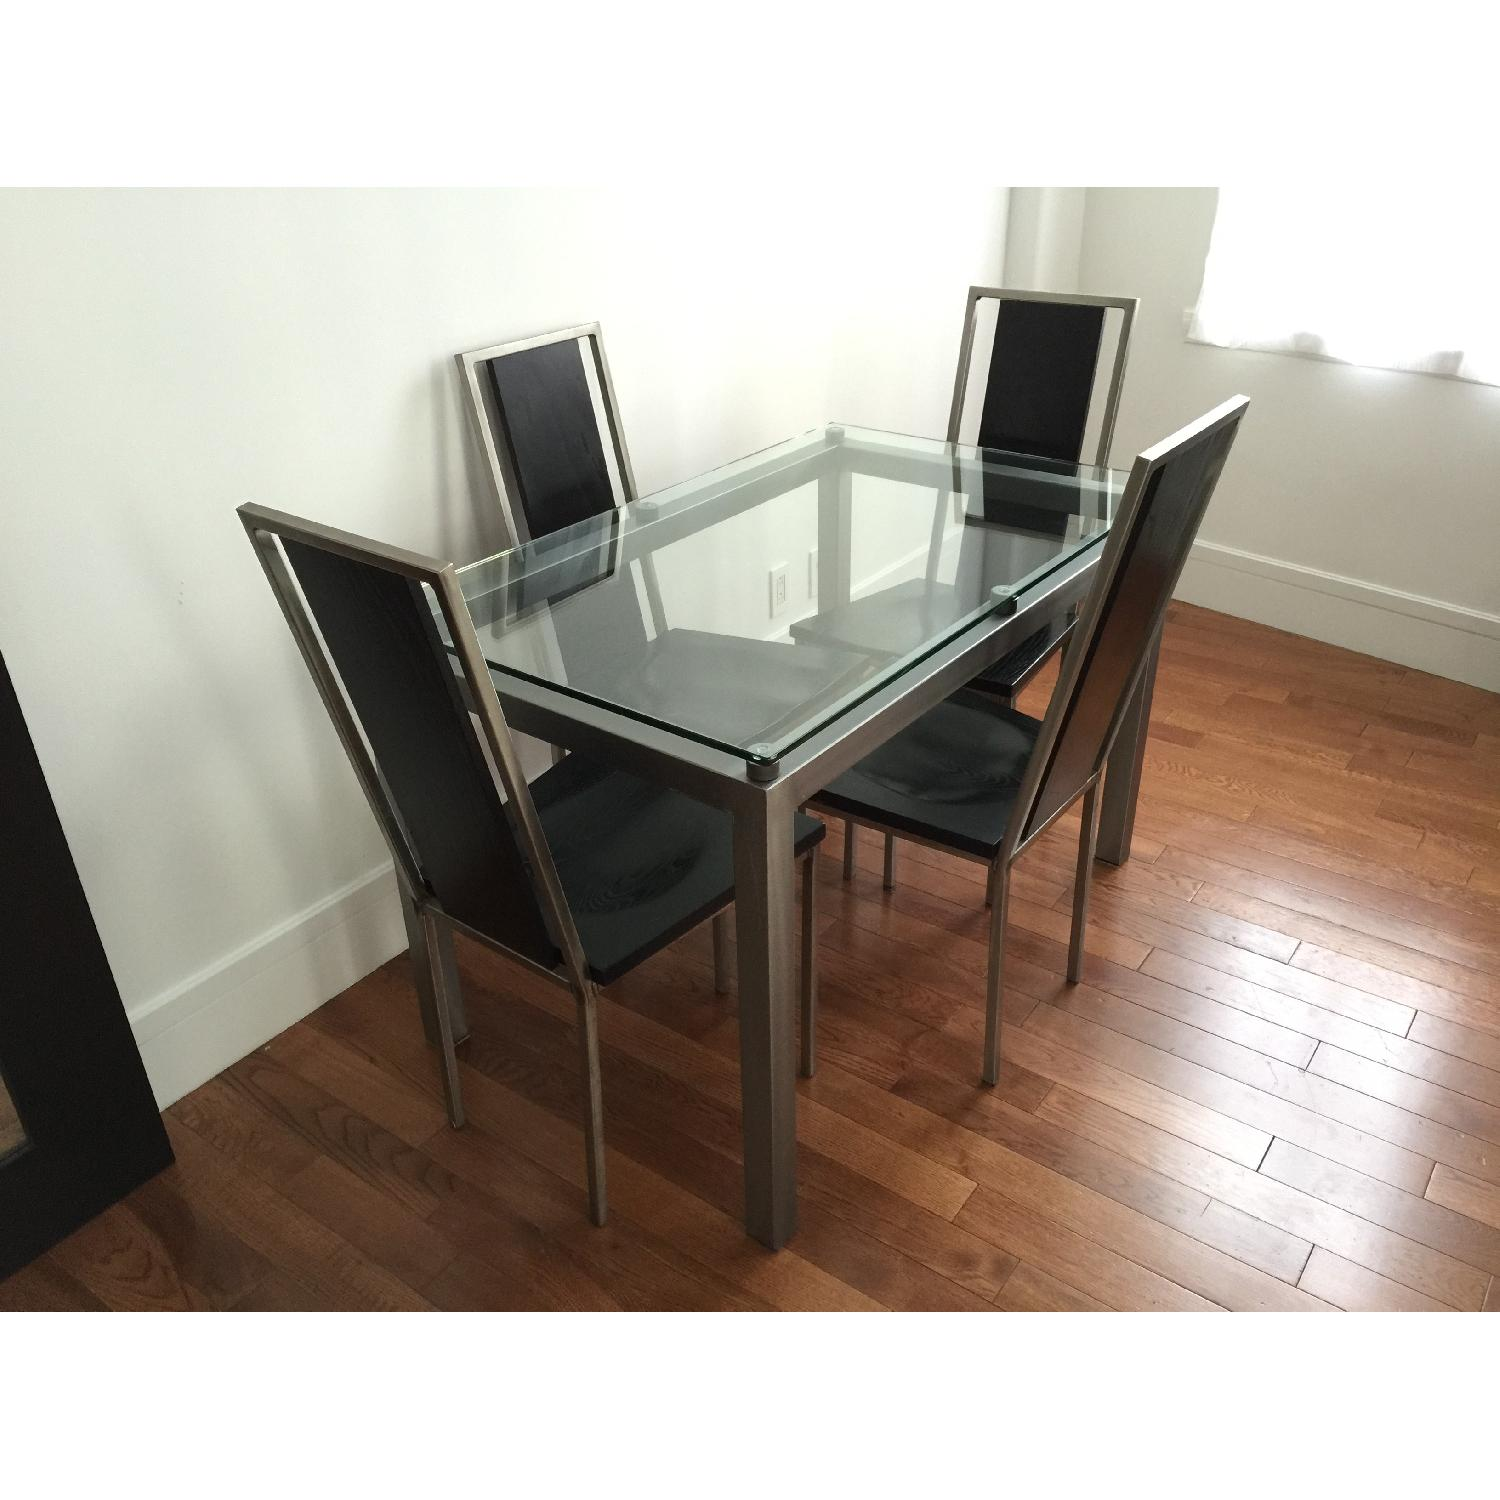 Glass Top/Stainless Base Parsons Table w/ 4 Black Ash Wood Chairs - image-3